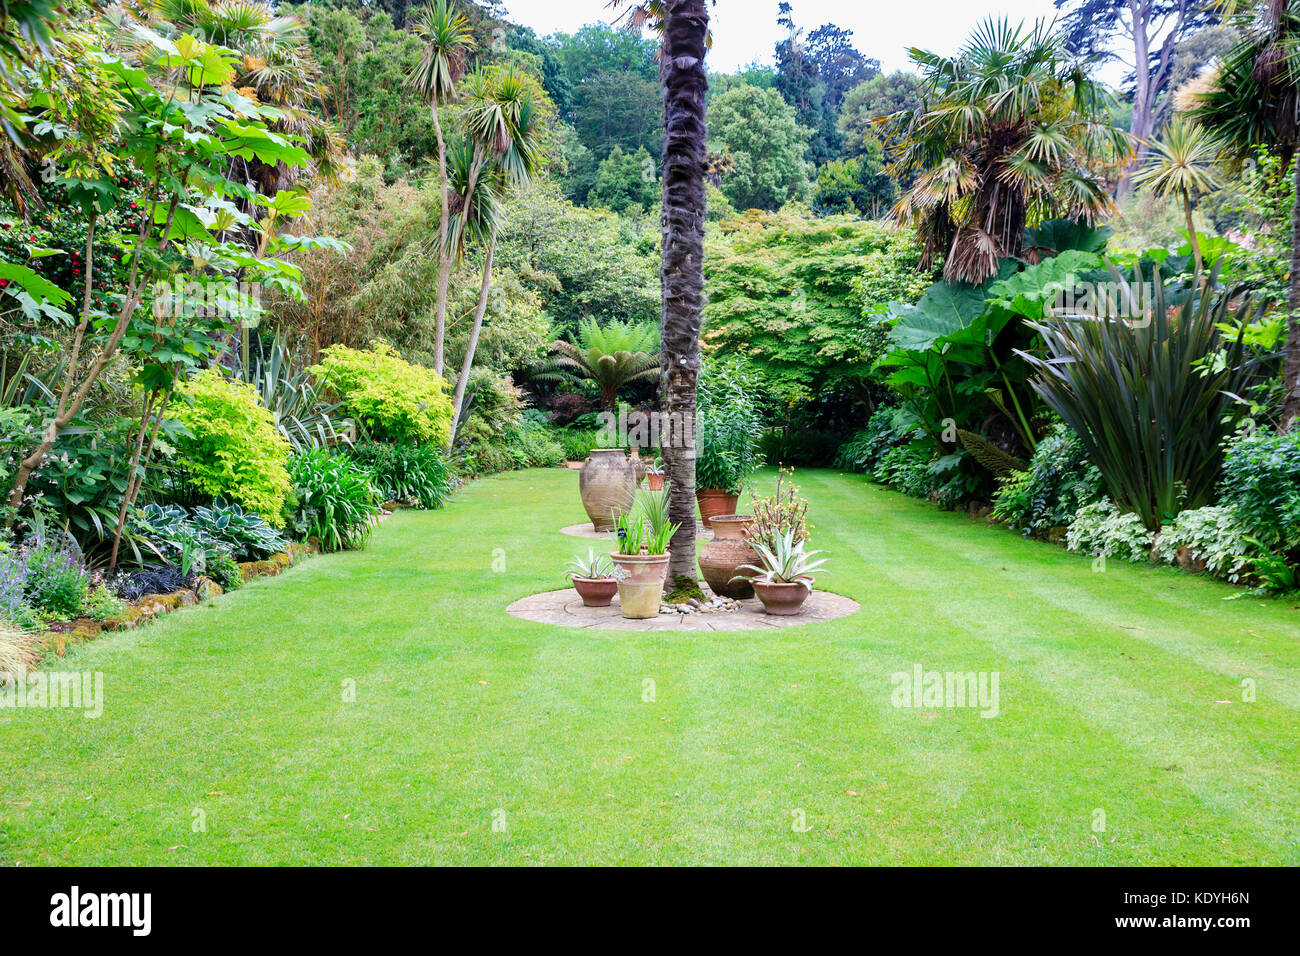 Exotic and subtropical planting surround the sunken lawn at Abbotsbury Subtropical Gardens, Dorset,UK - Stock Image